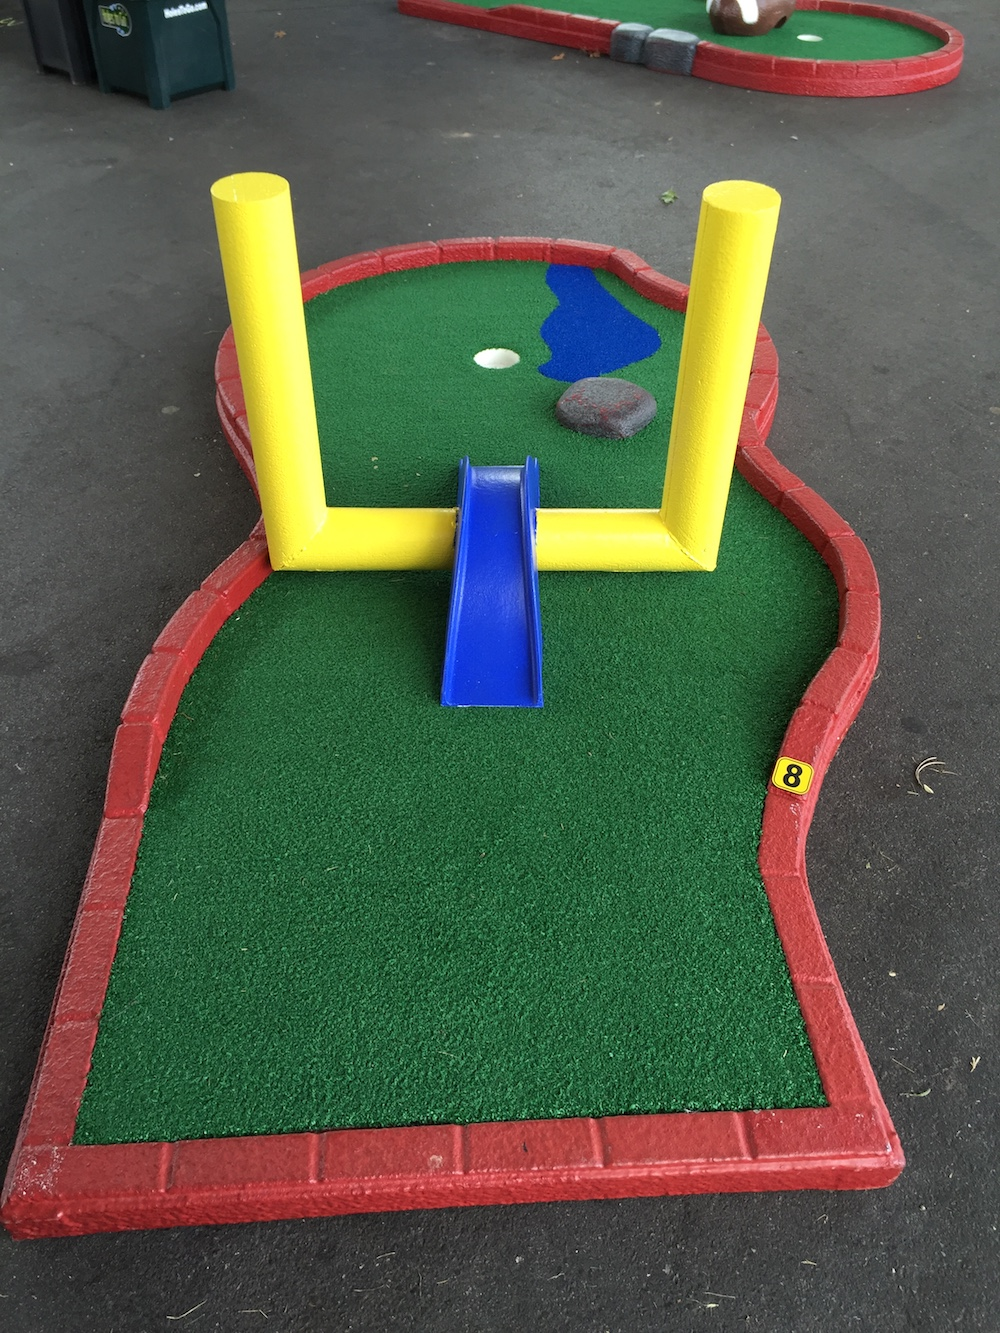 Strange Portable Mini Golf Courses Holes To Go Download Free Architecture Designs Intelgarnamadebymaigaardcom